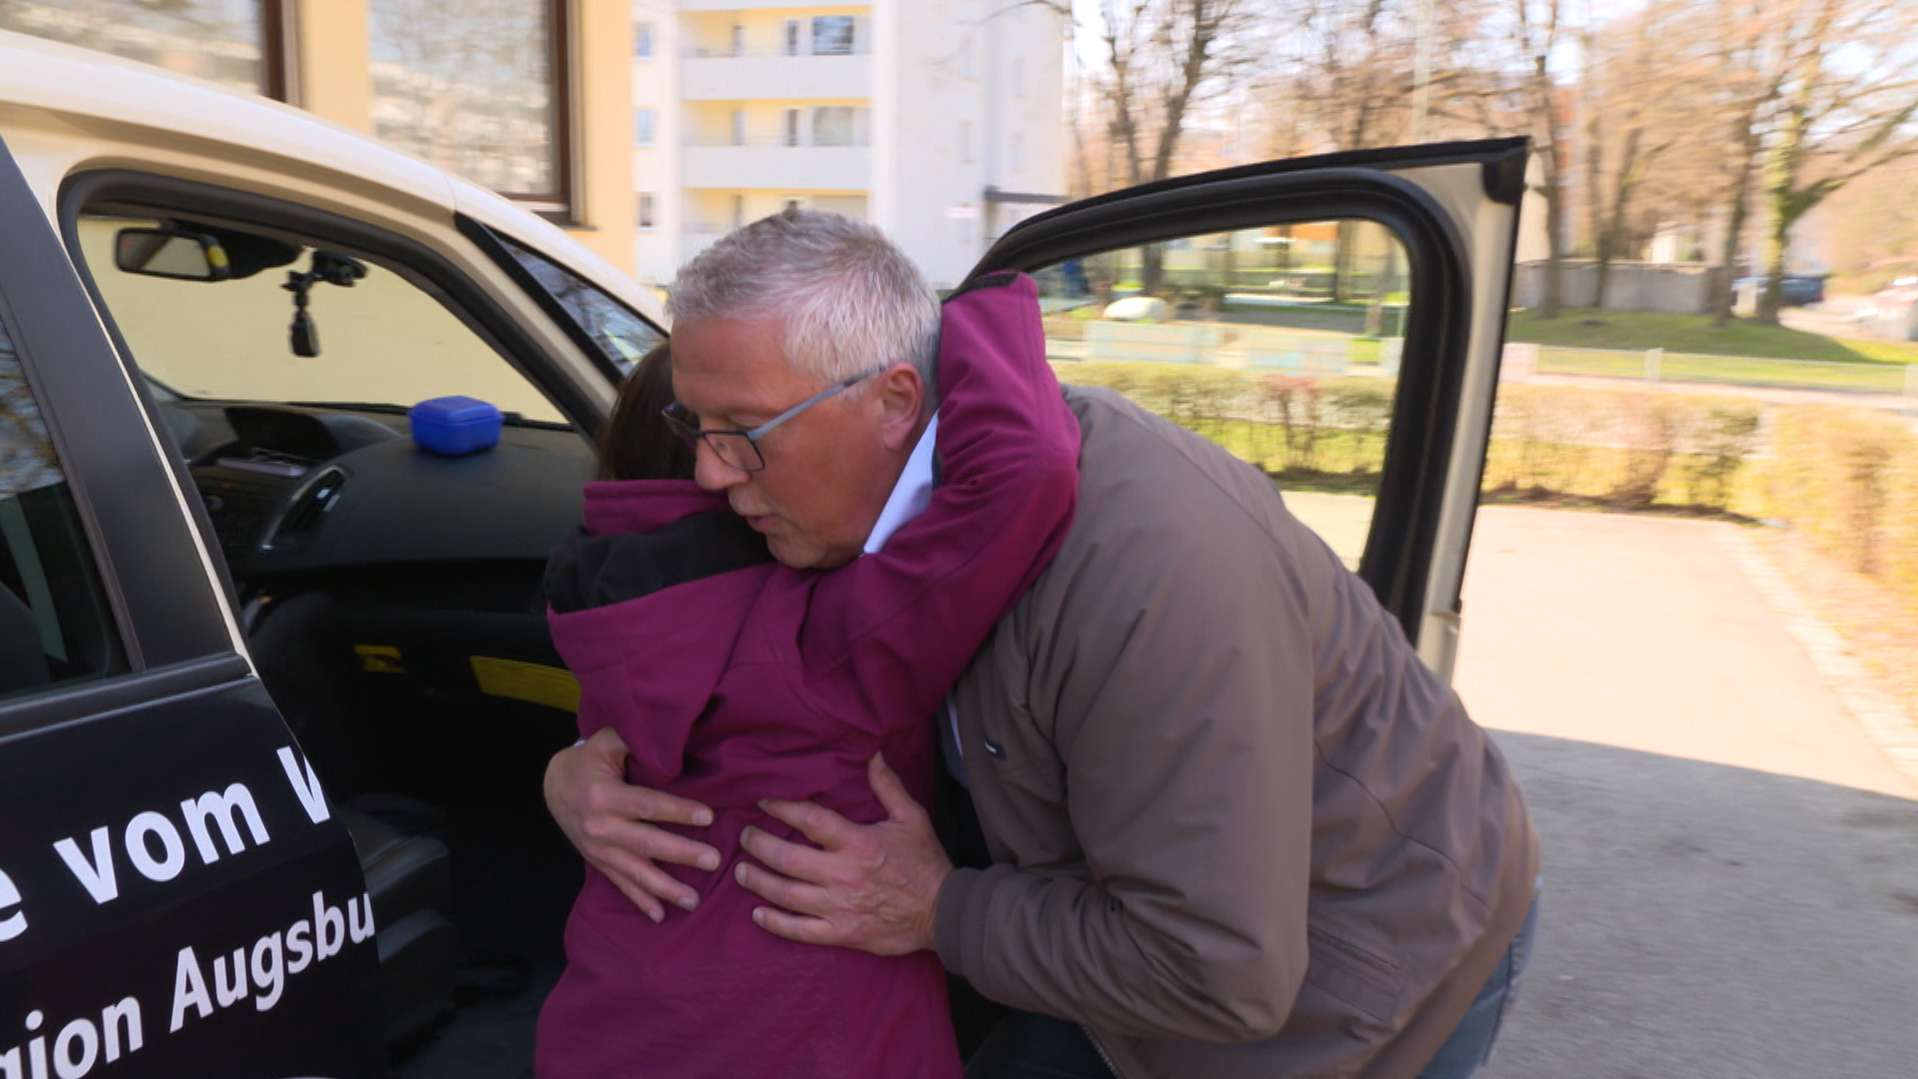 Taxifahrer hilft Patientin ins Taxi